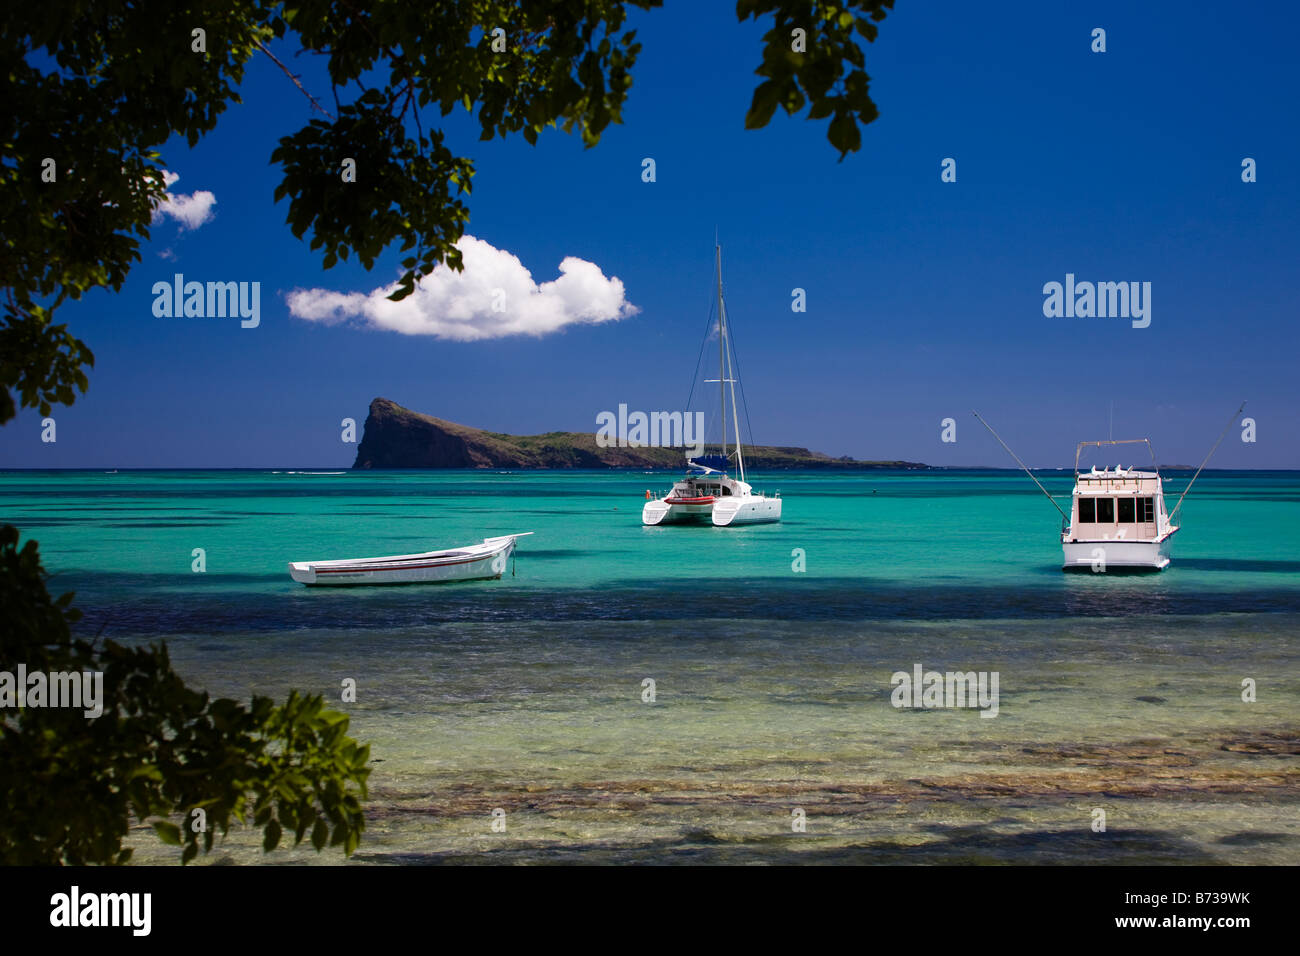 Island of Coin de Mire also known as Gunners Quoin Indian Ocean Mauritius near Grand Baie - Stock Image